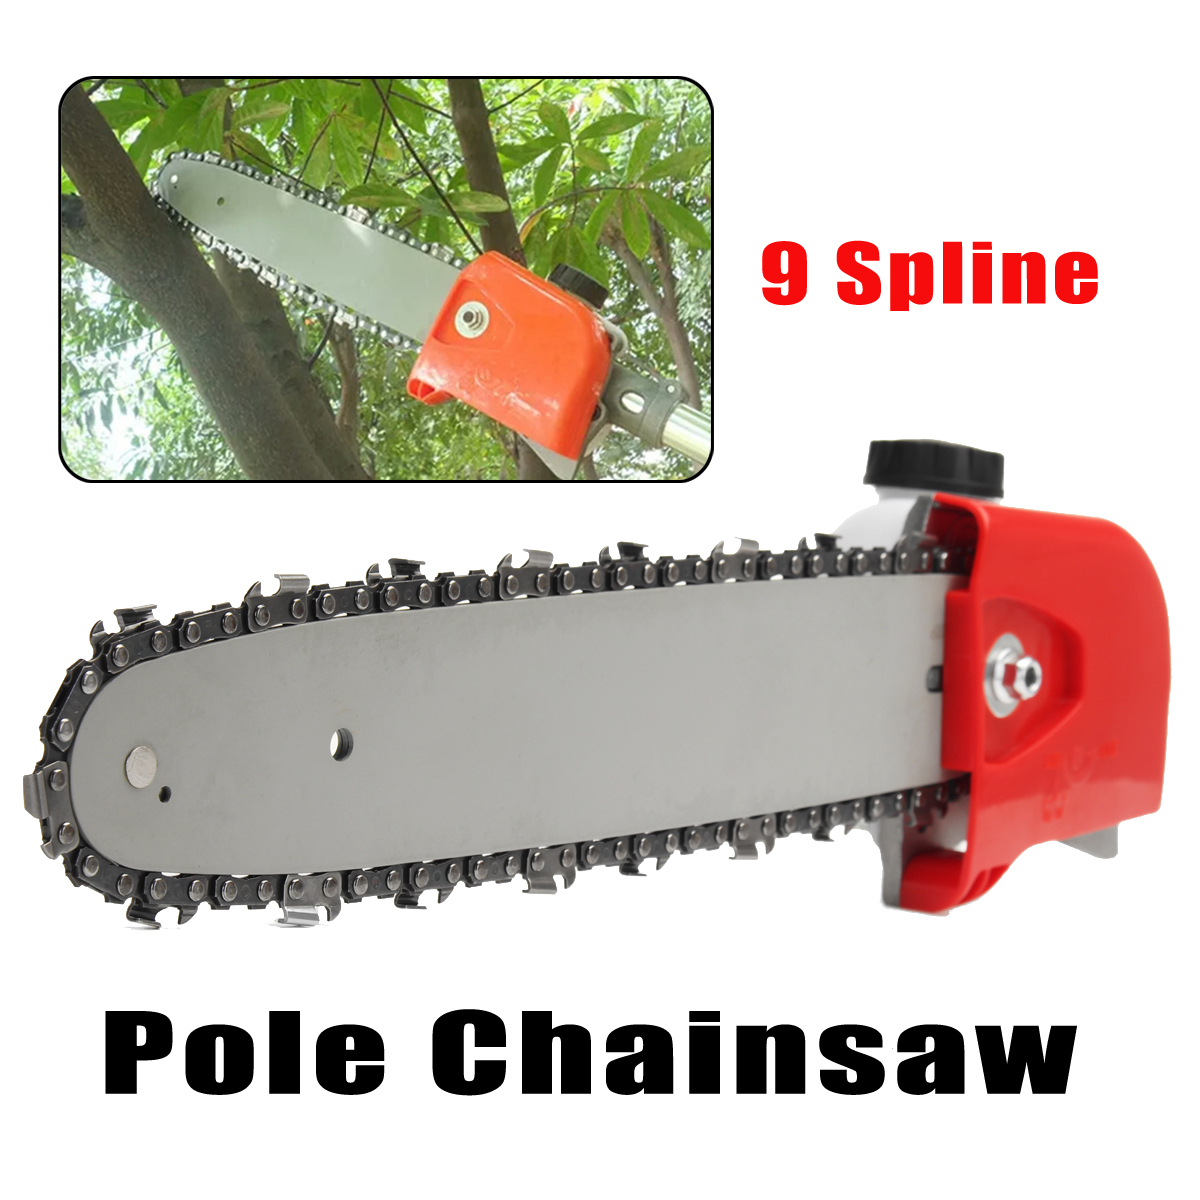 цена 26mm 7/9 Spline Pole Saw Tree Cutter Chainsaw Bracket Gearbox Gear Head Tool Replacement Part Power Tool Accessories